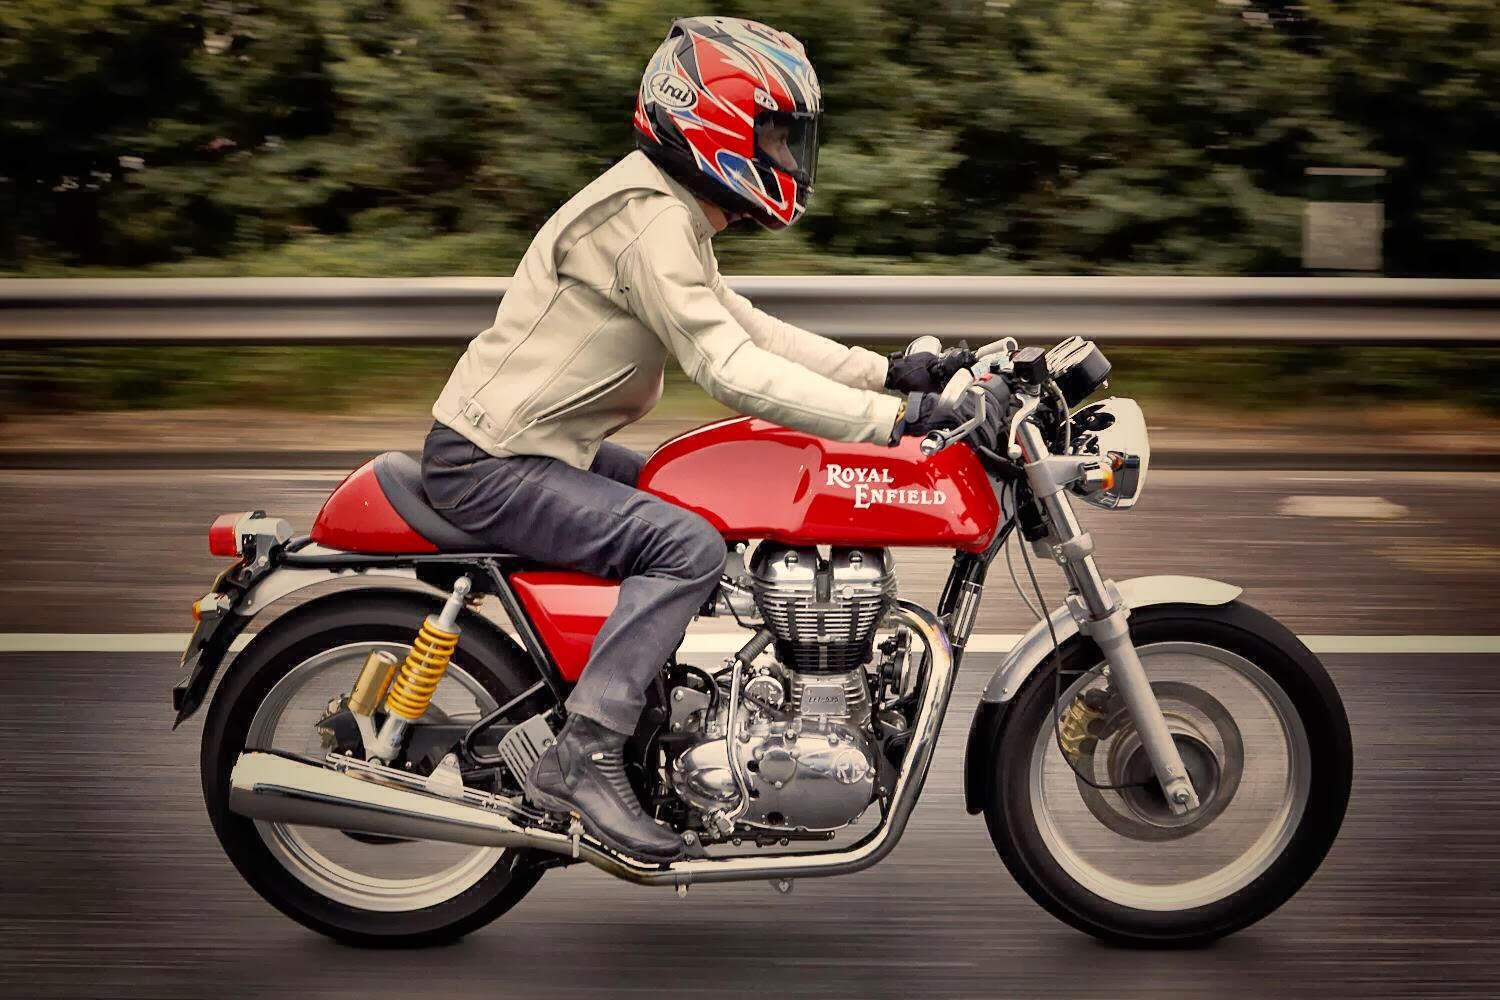 royal enfield continental gt launched at a price of. Black Bedroom Furniture Sets. Home Design Ideas